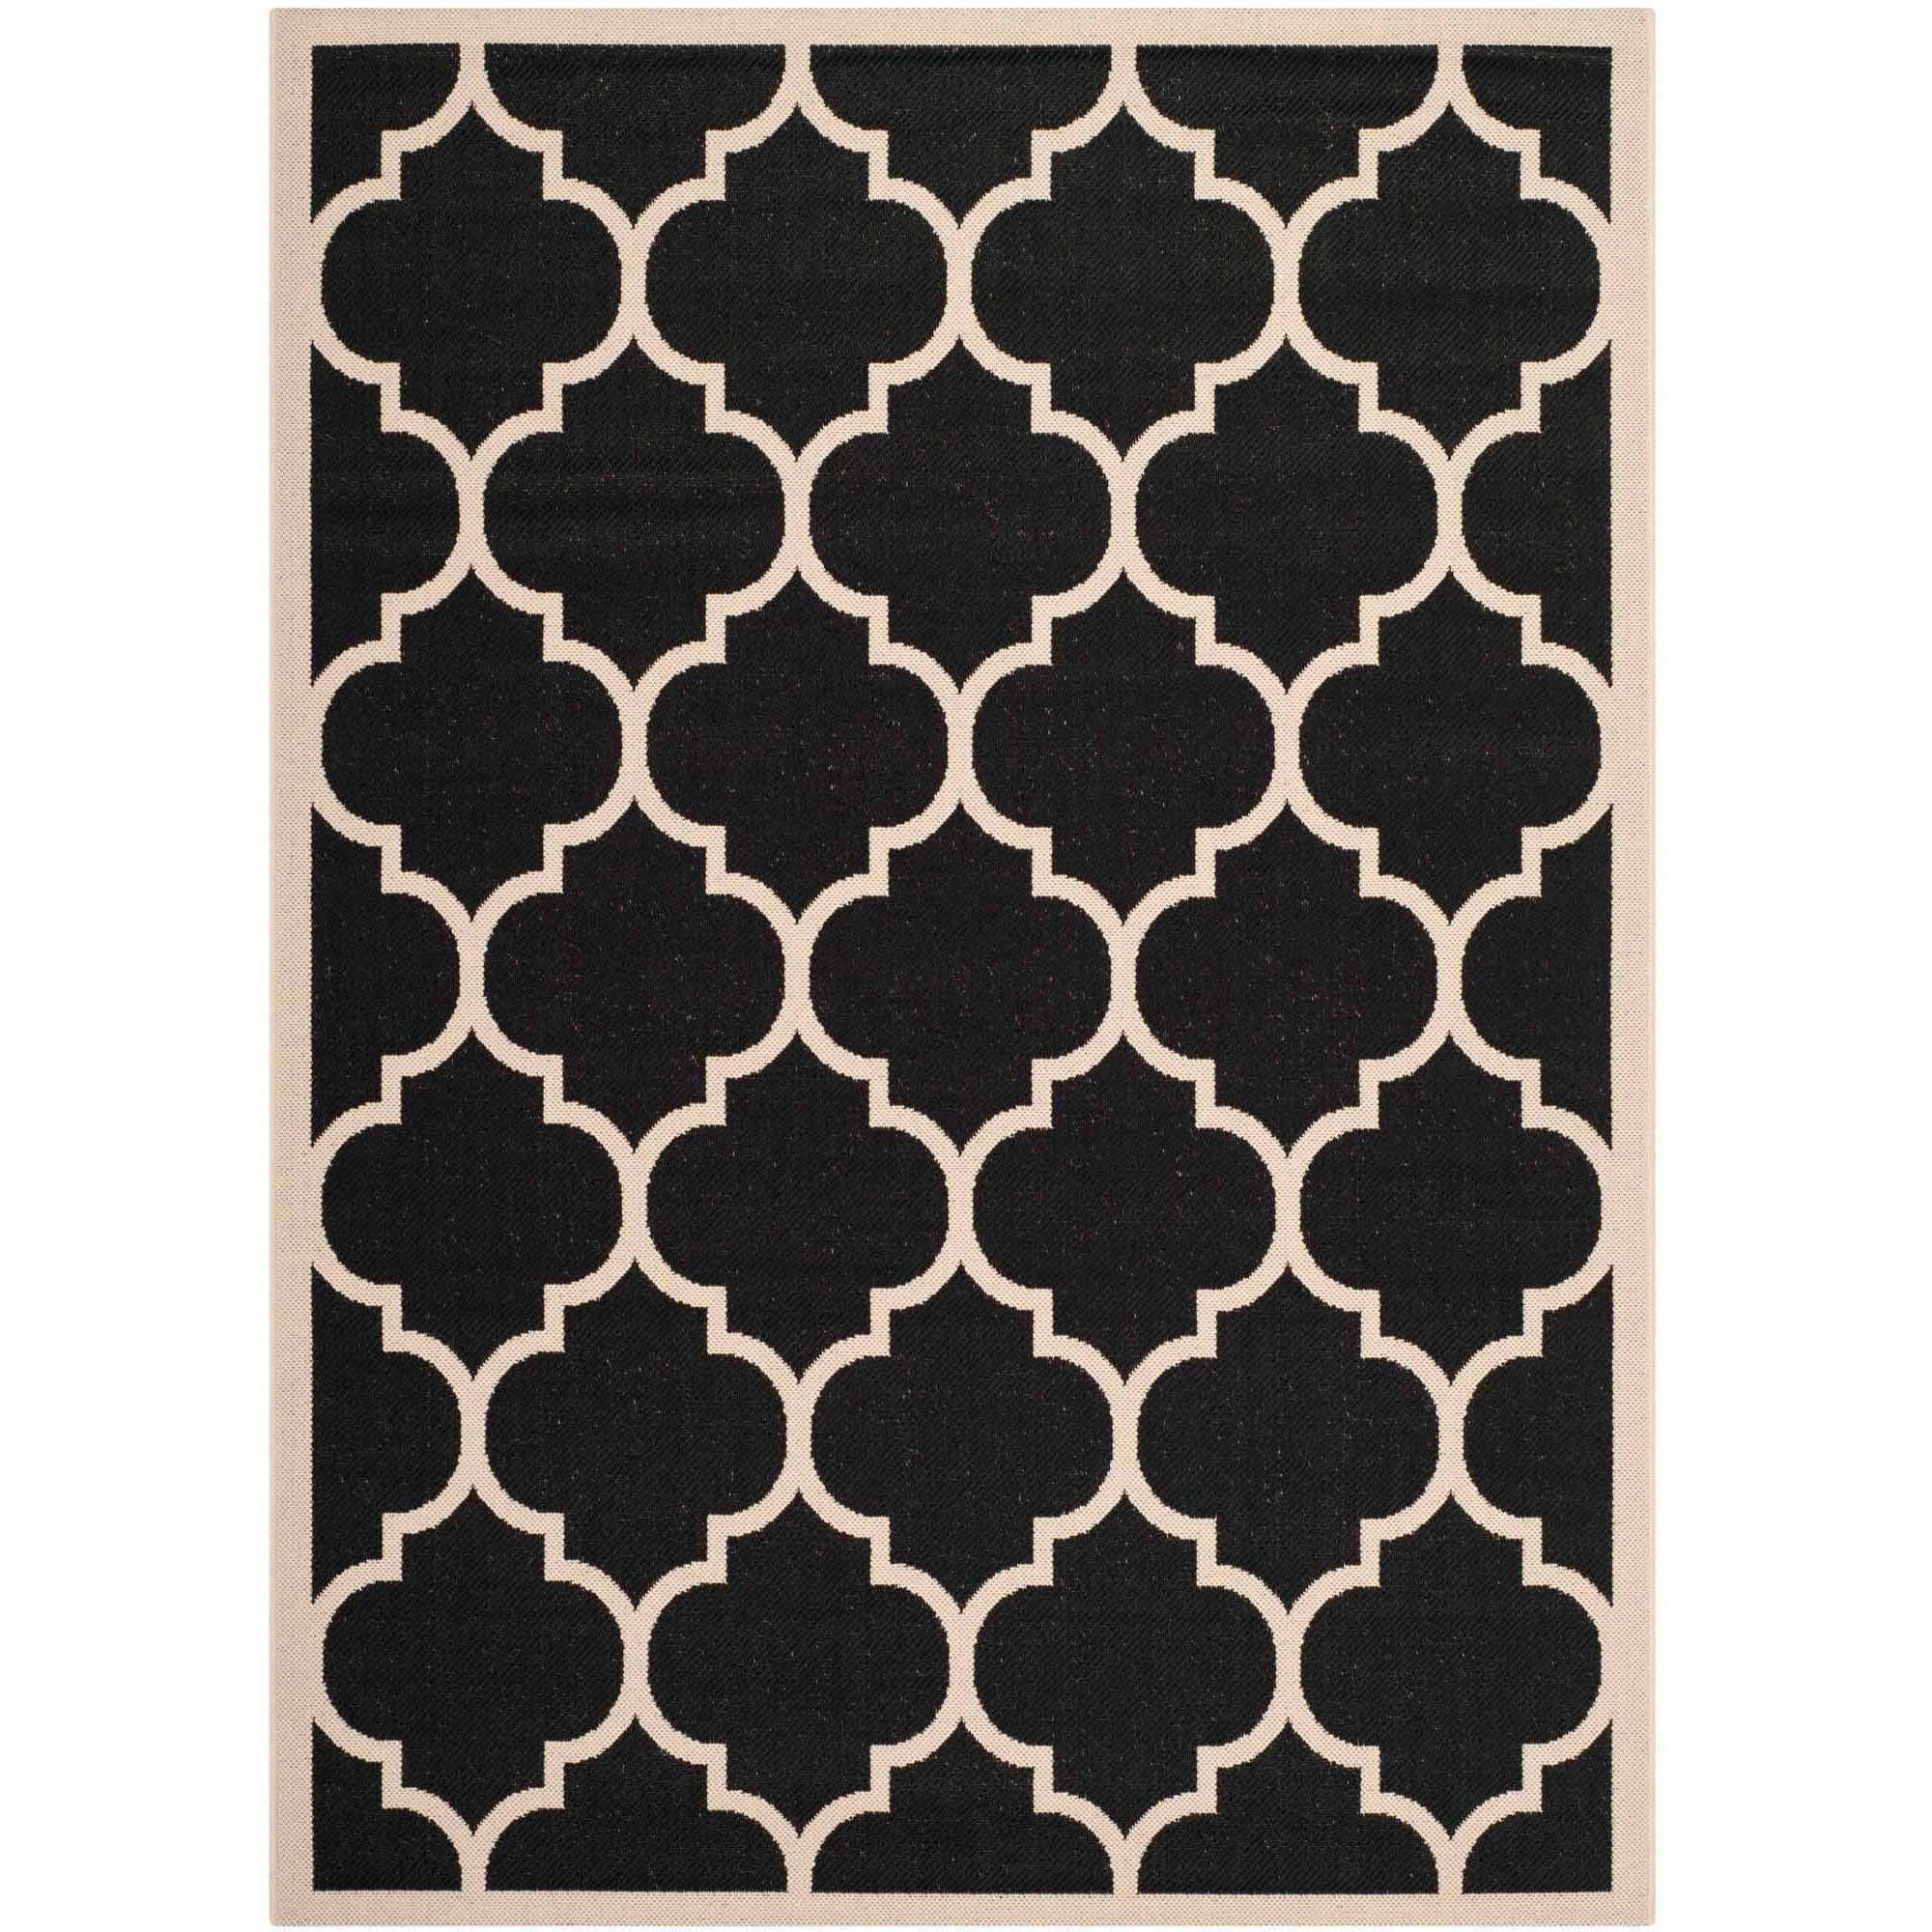 Safavieh Courtyard Alyssa Power-Loomed Indoor/Outdoor Area Rug or Runner